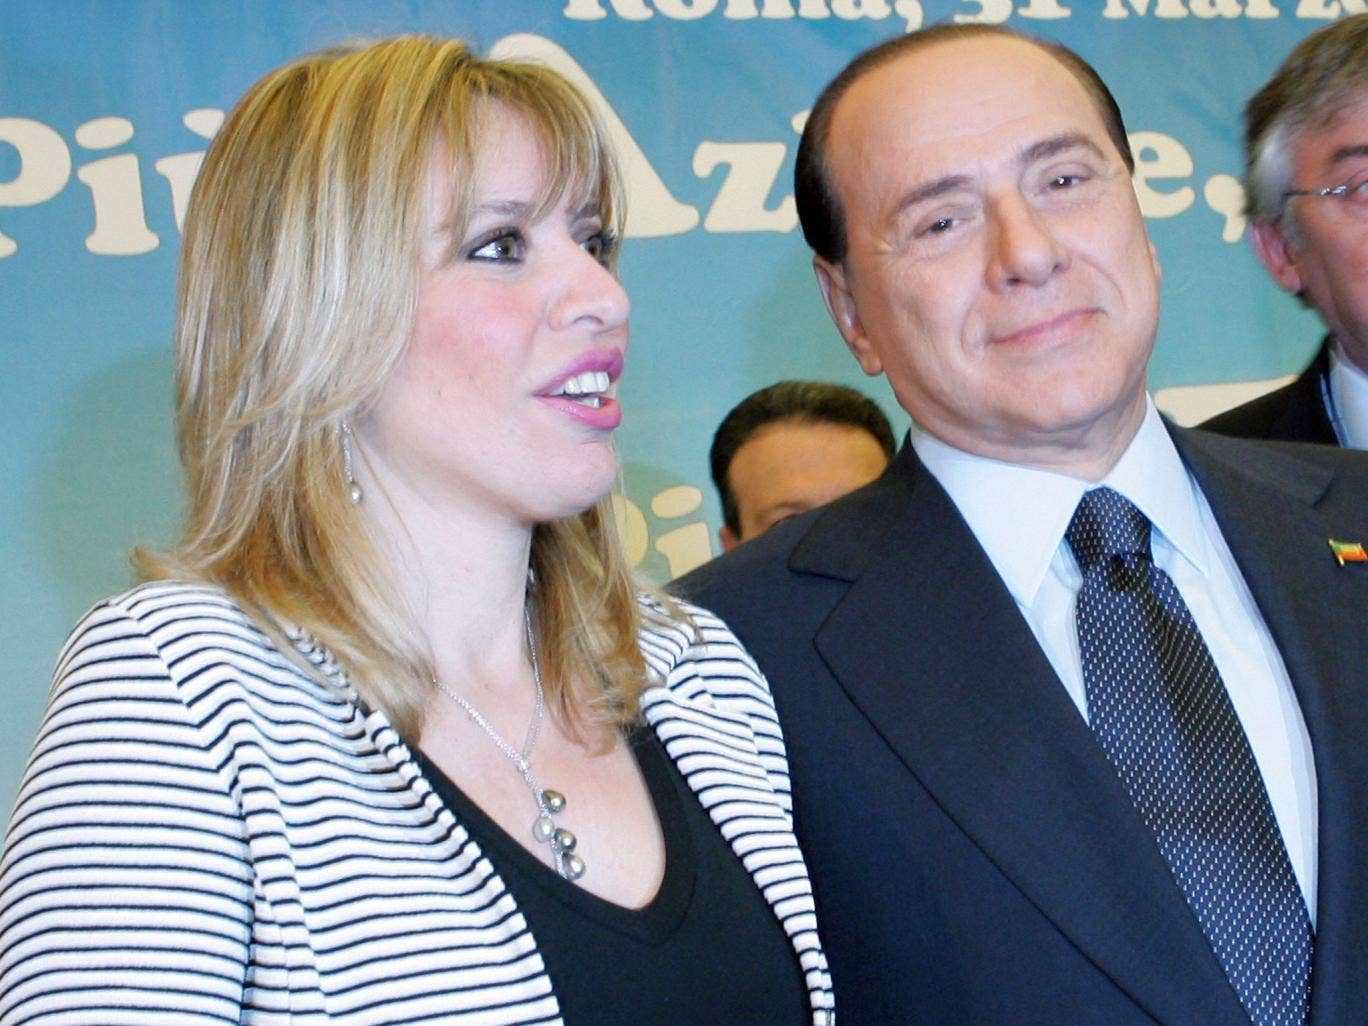 Alessandra Mussolini MP, pictured here in 2007 with Silvio Berlusconi, whose Forza Italia party she would later join